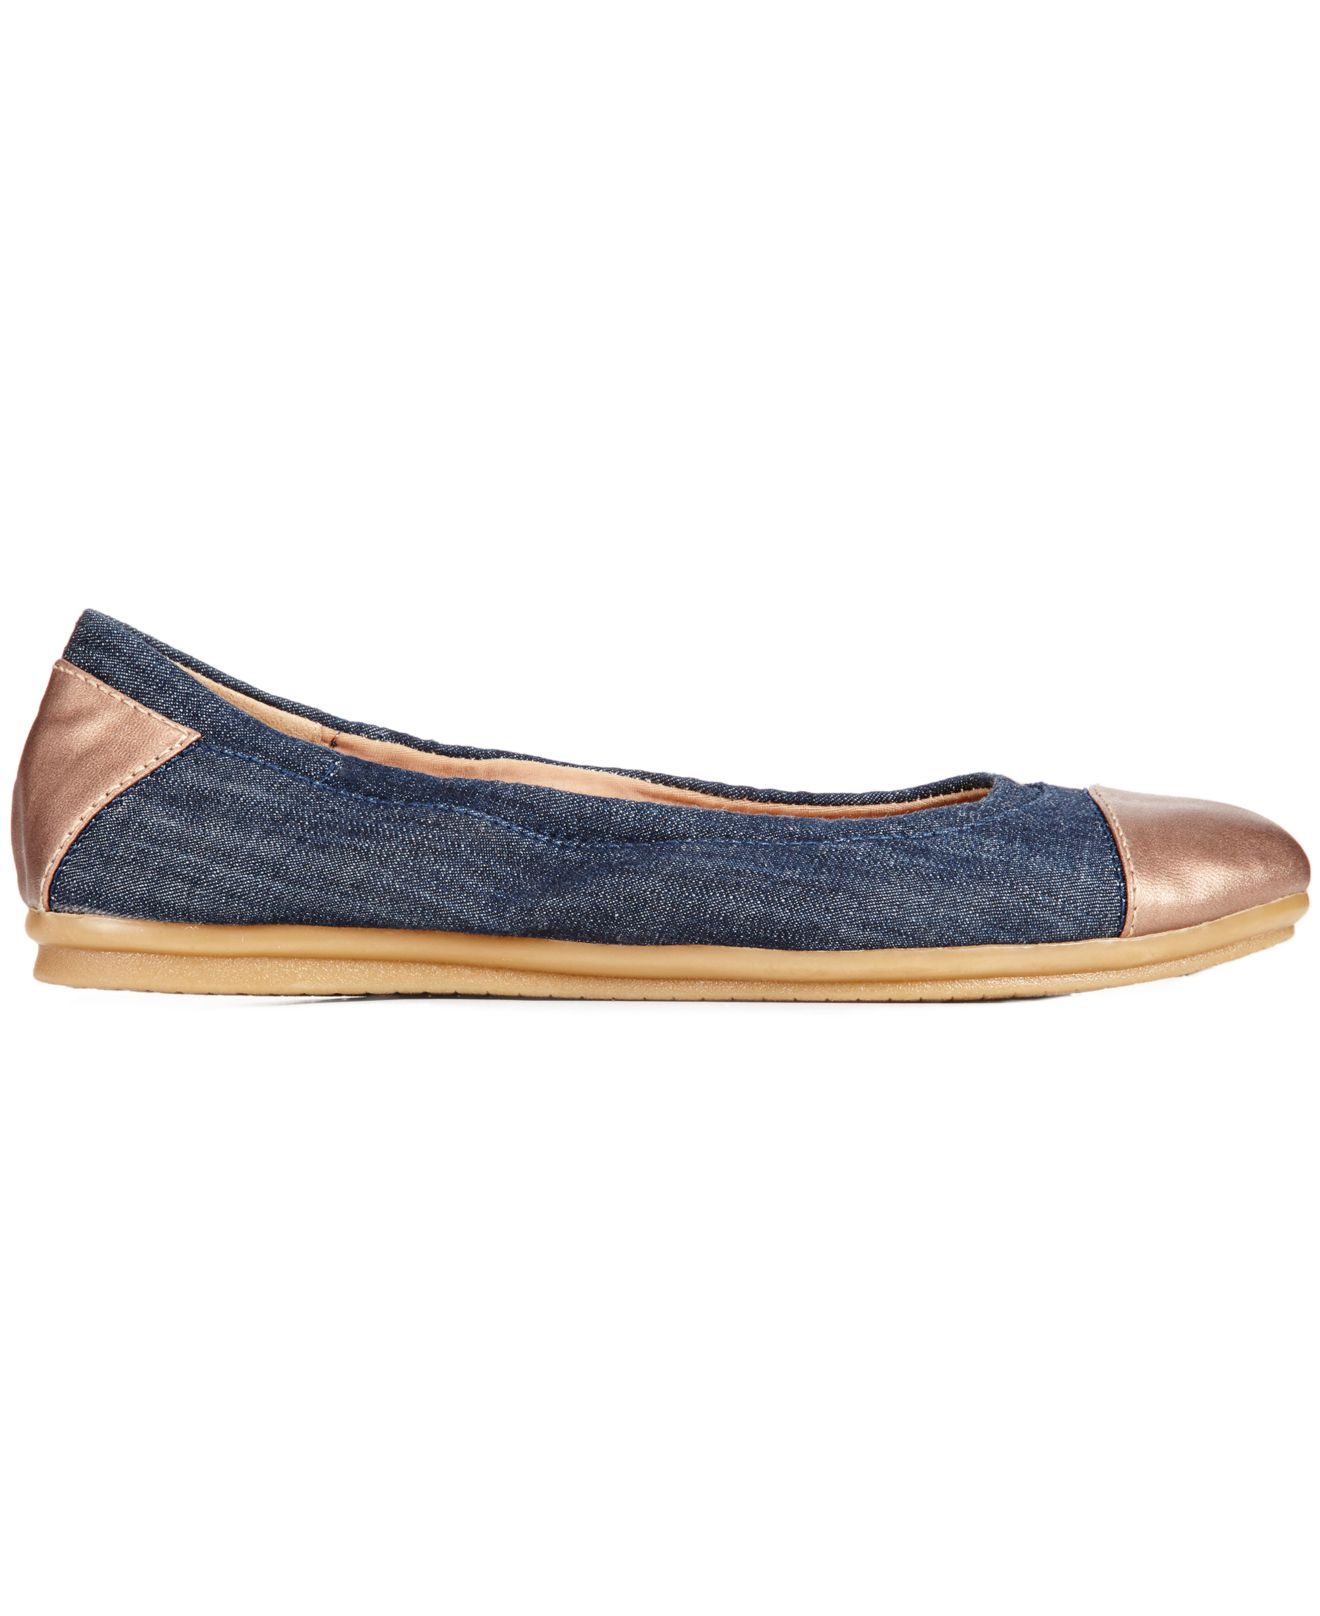 Easy Spirit Shoes Gessica Flats